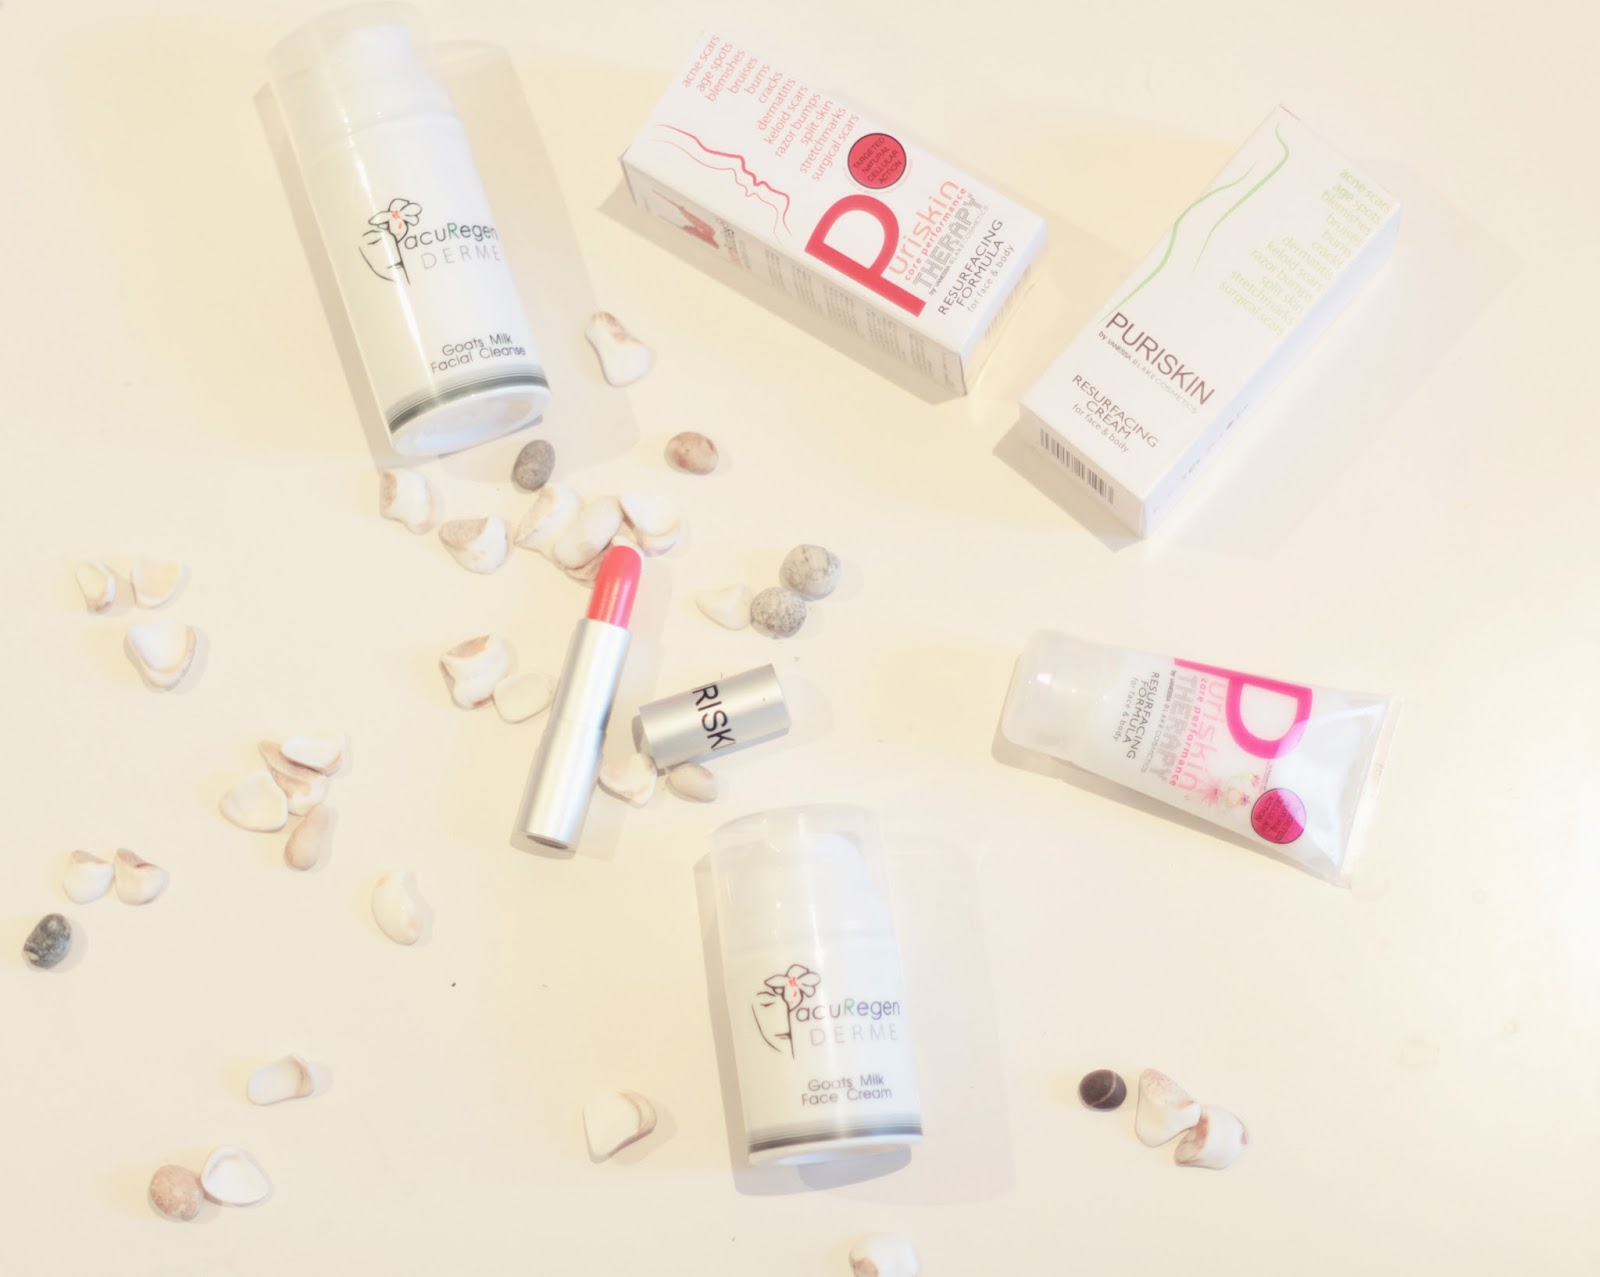 ACUREGEN cosmetics puriskin resurfacing formula white blog flatlay